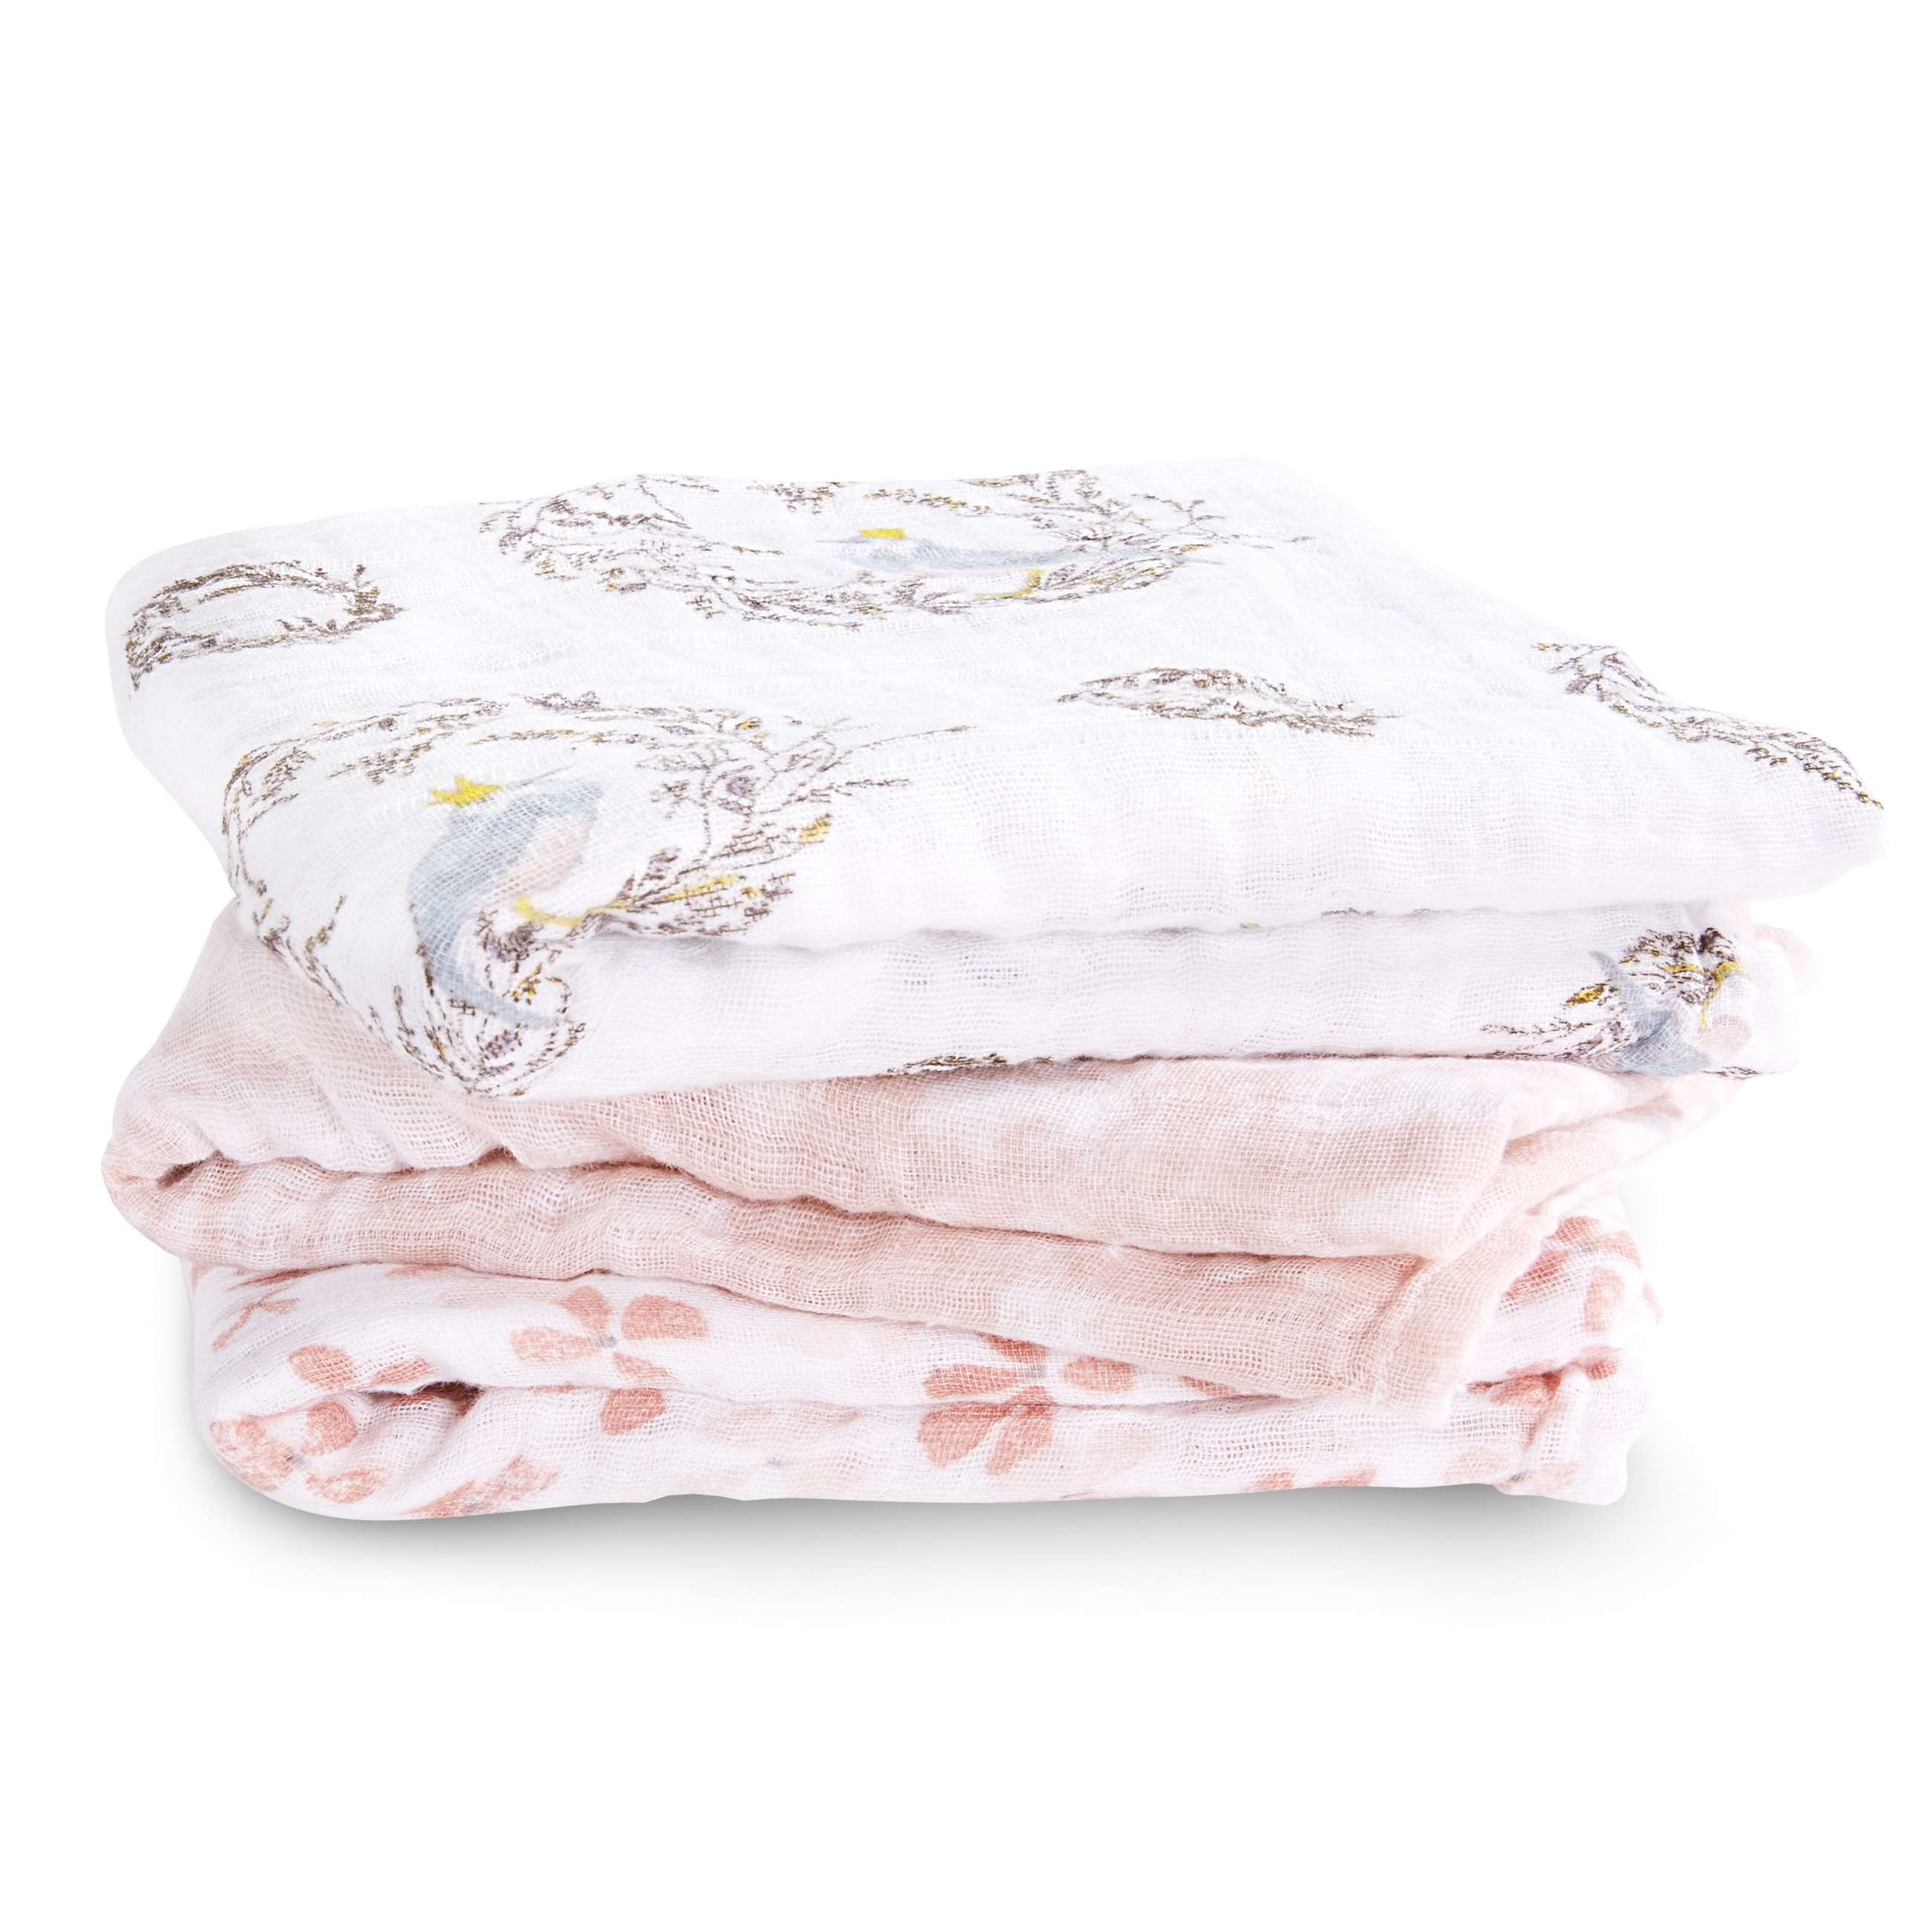 7231g_1-security-blanket-muslin-birdsong-pink